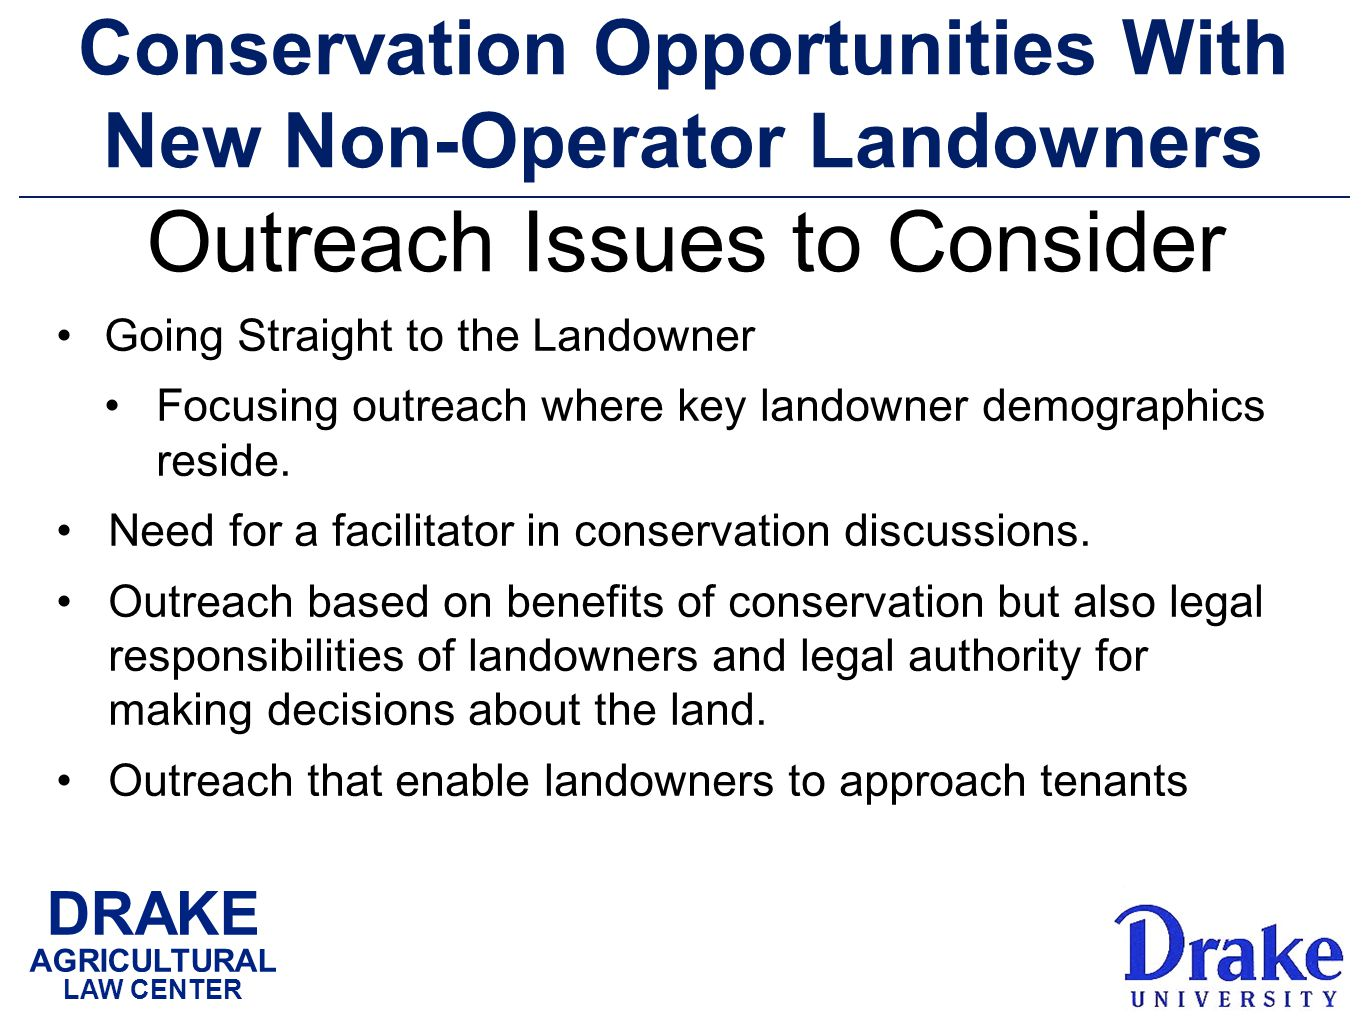 DRAKE AGRICULTURAL LAW CENTER Conservation Opportunities With New Non-Operator Landowners Going Straight to the Landowner Focusing outreach where key landowner demographics reside.